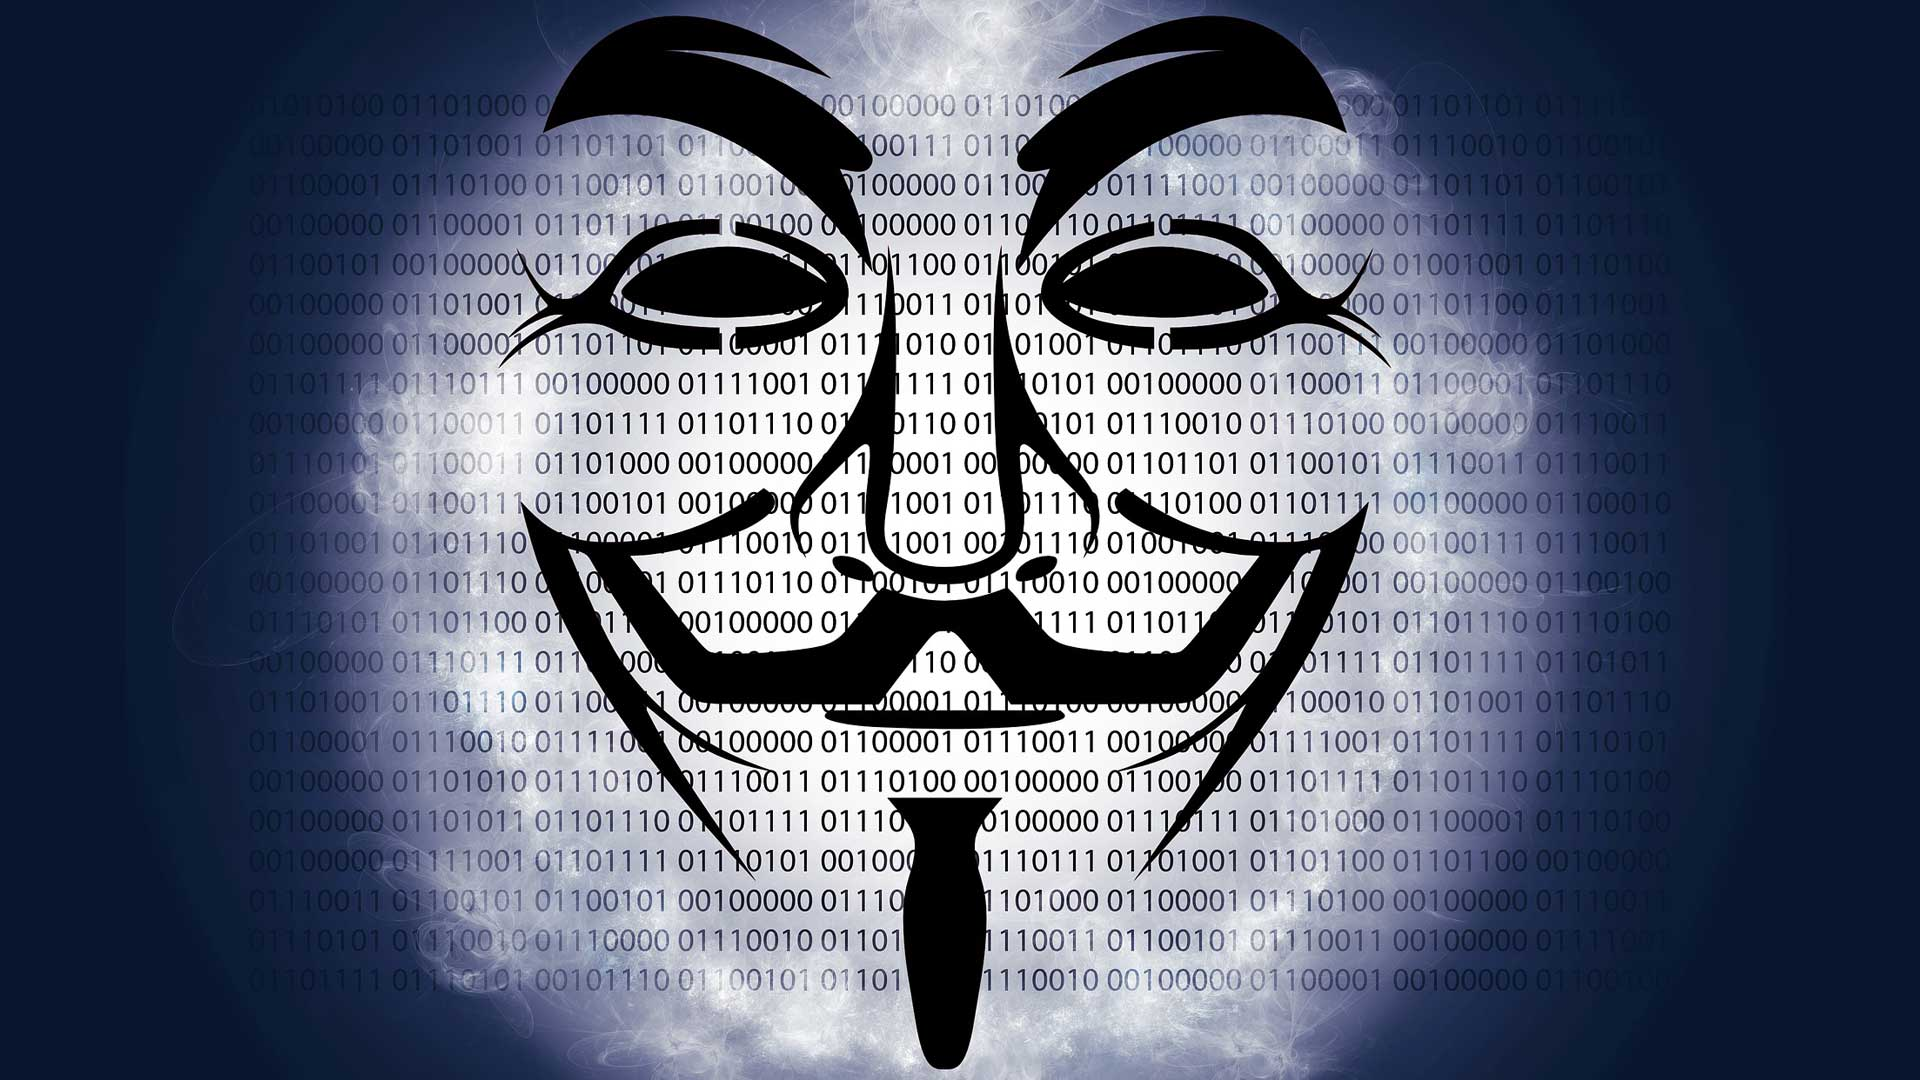 anonymity on the internet Anonymity on the internet is a double edged sword: it is a beautiful thing that allows us to try new things, test the waters, speak to and about people who we never could otherwise.